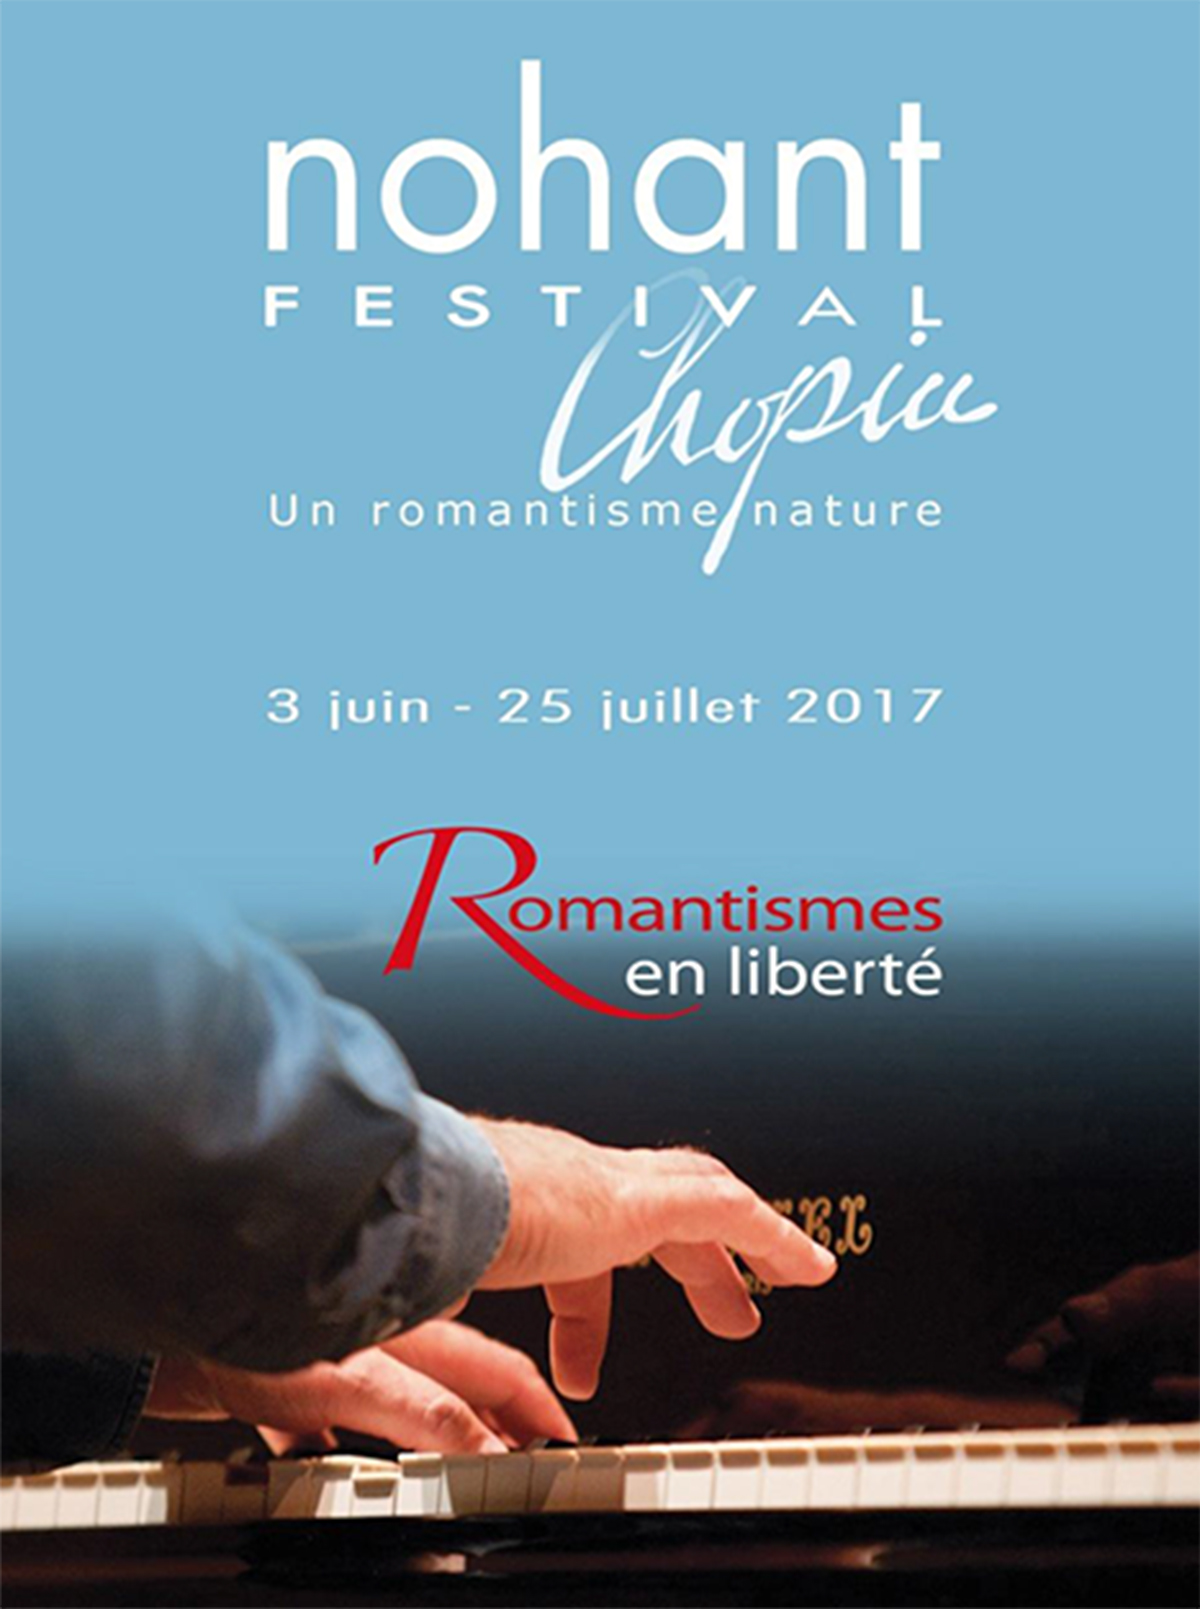 affiche-nohant-festival-chopin-2017